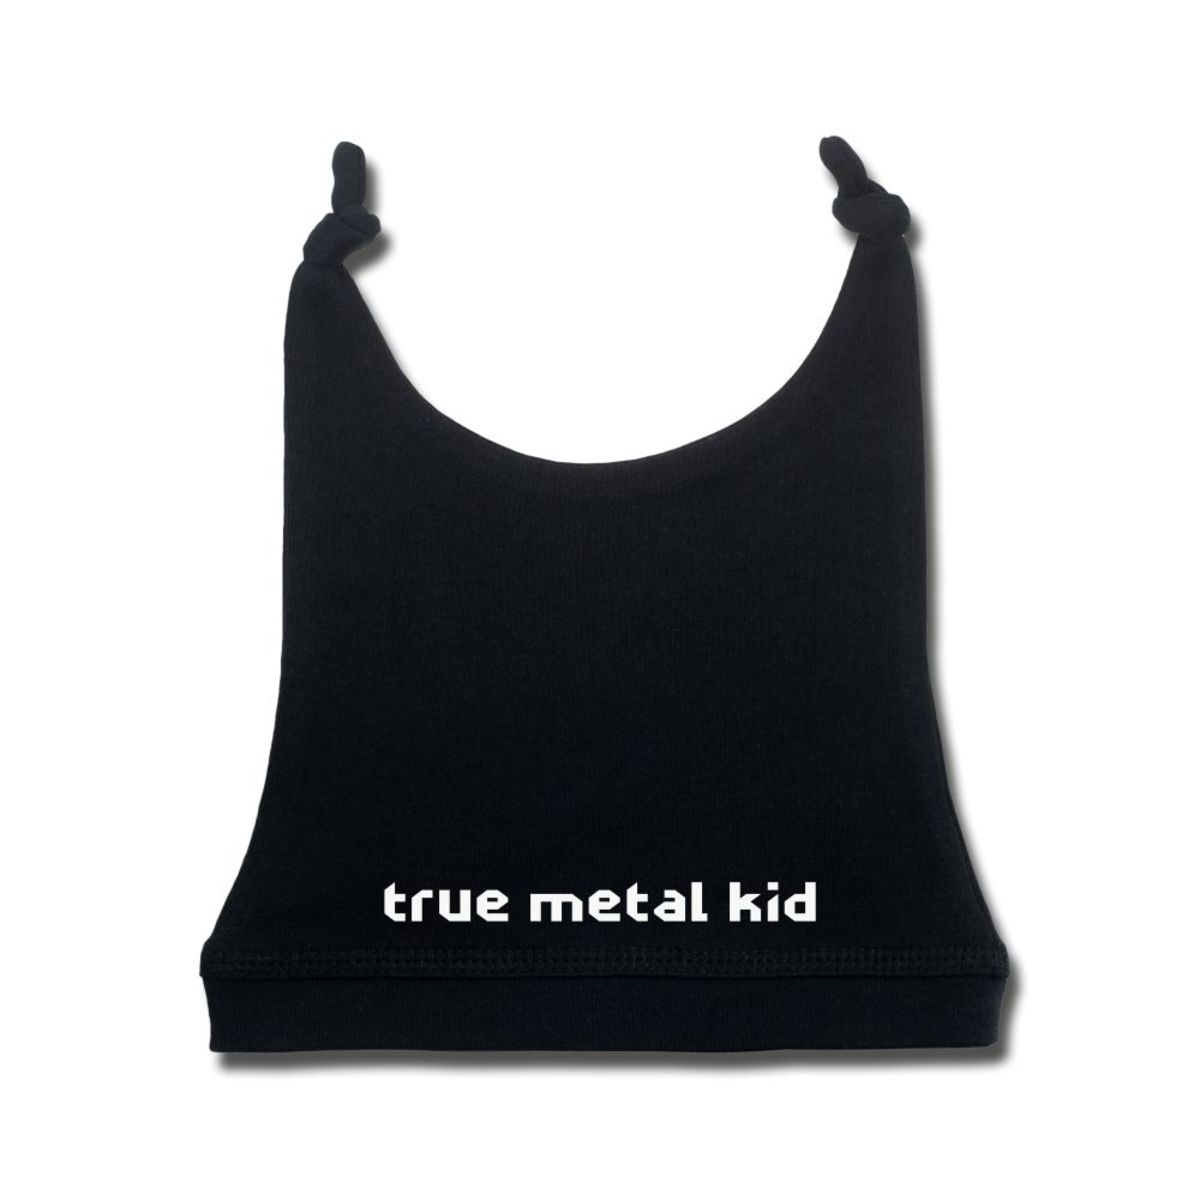 Metal-Kids black